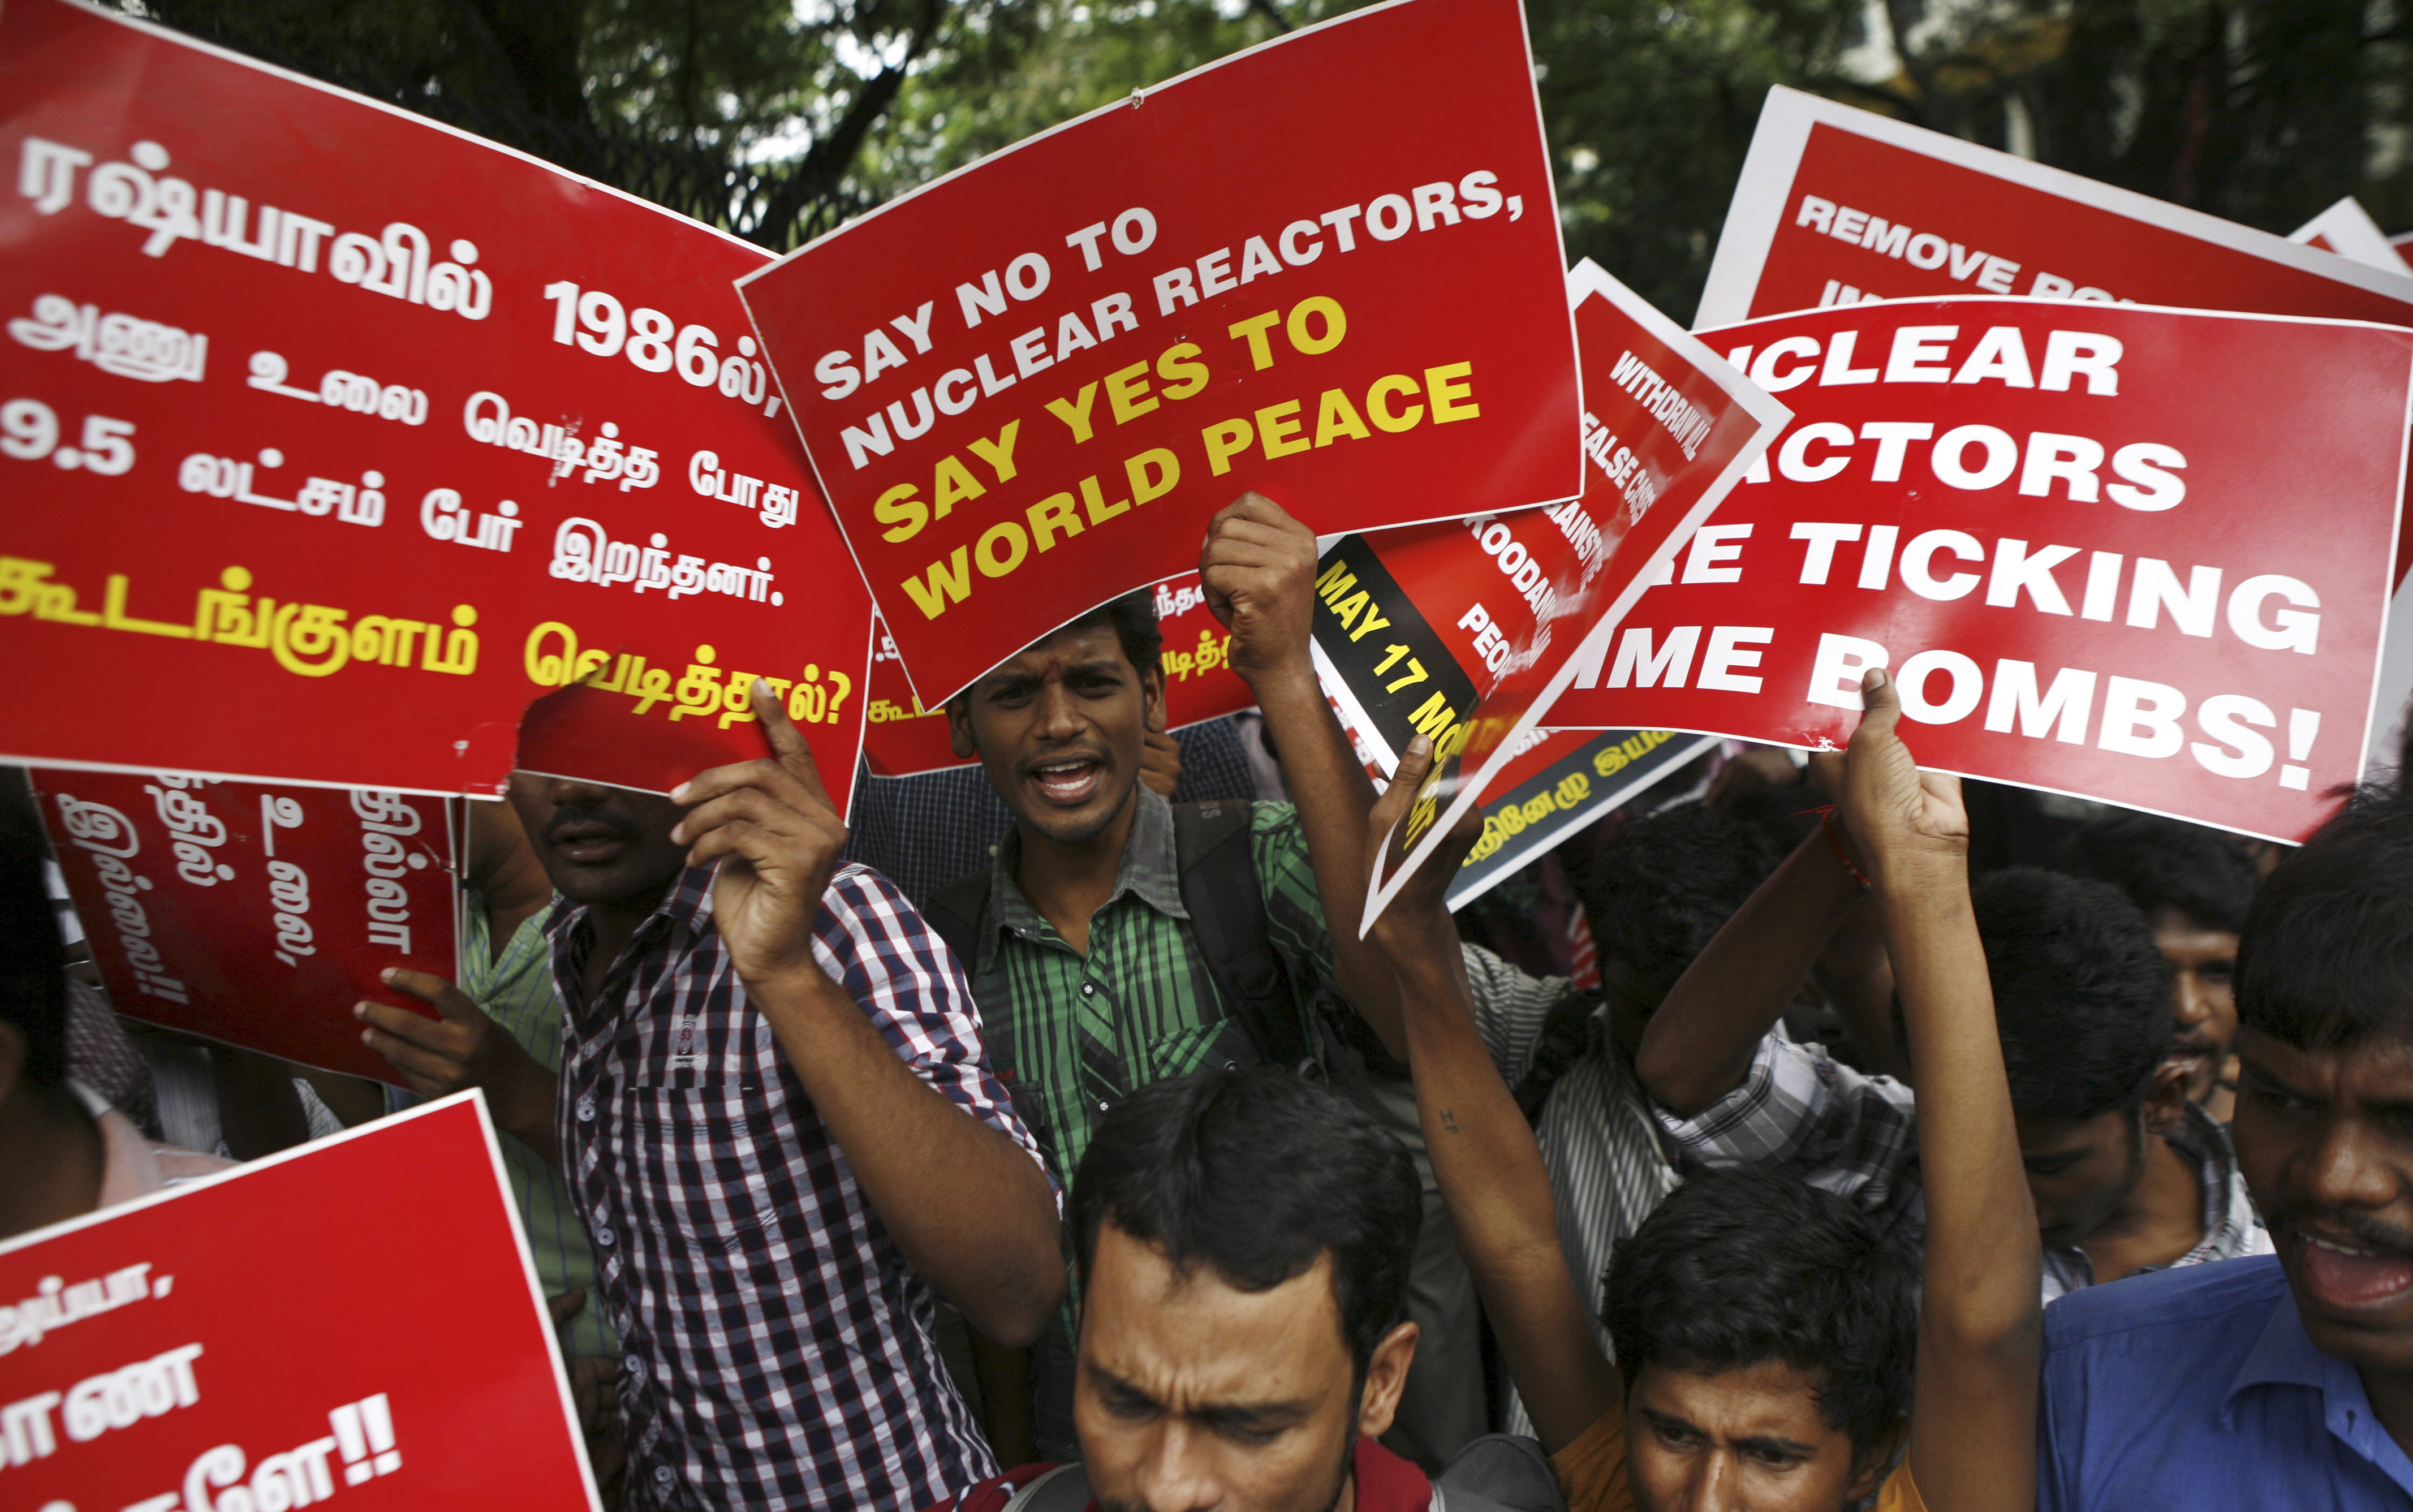 Anti-nuclear energy protestors in Chennai. Source: AP